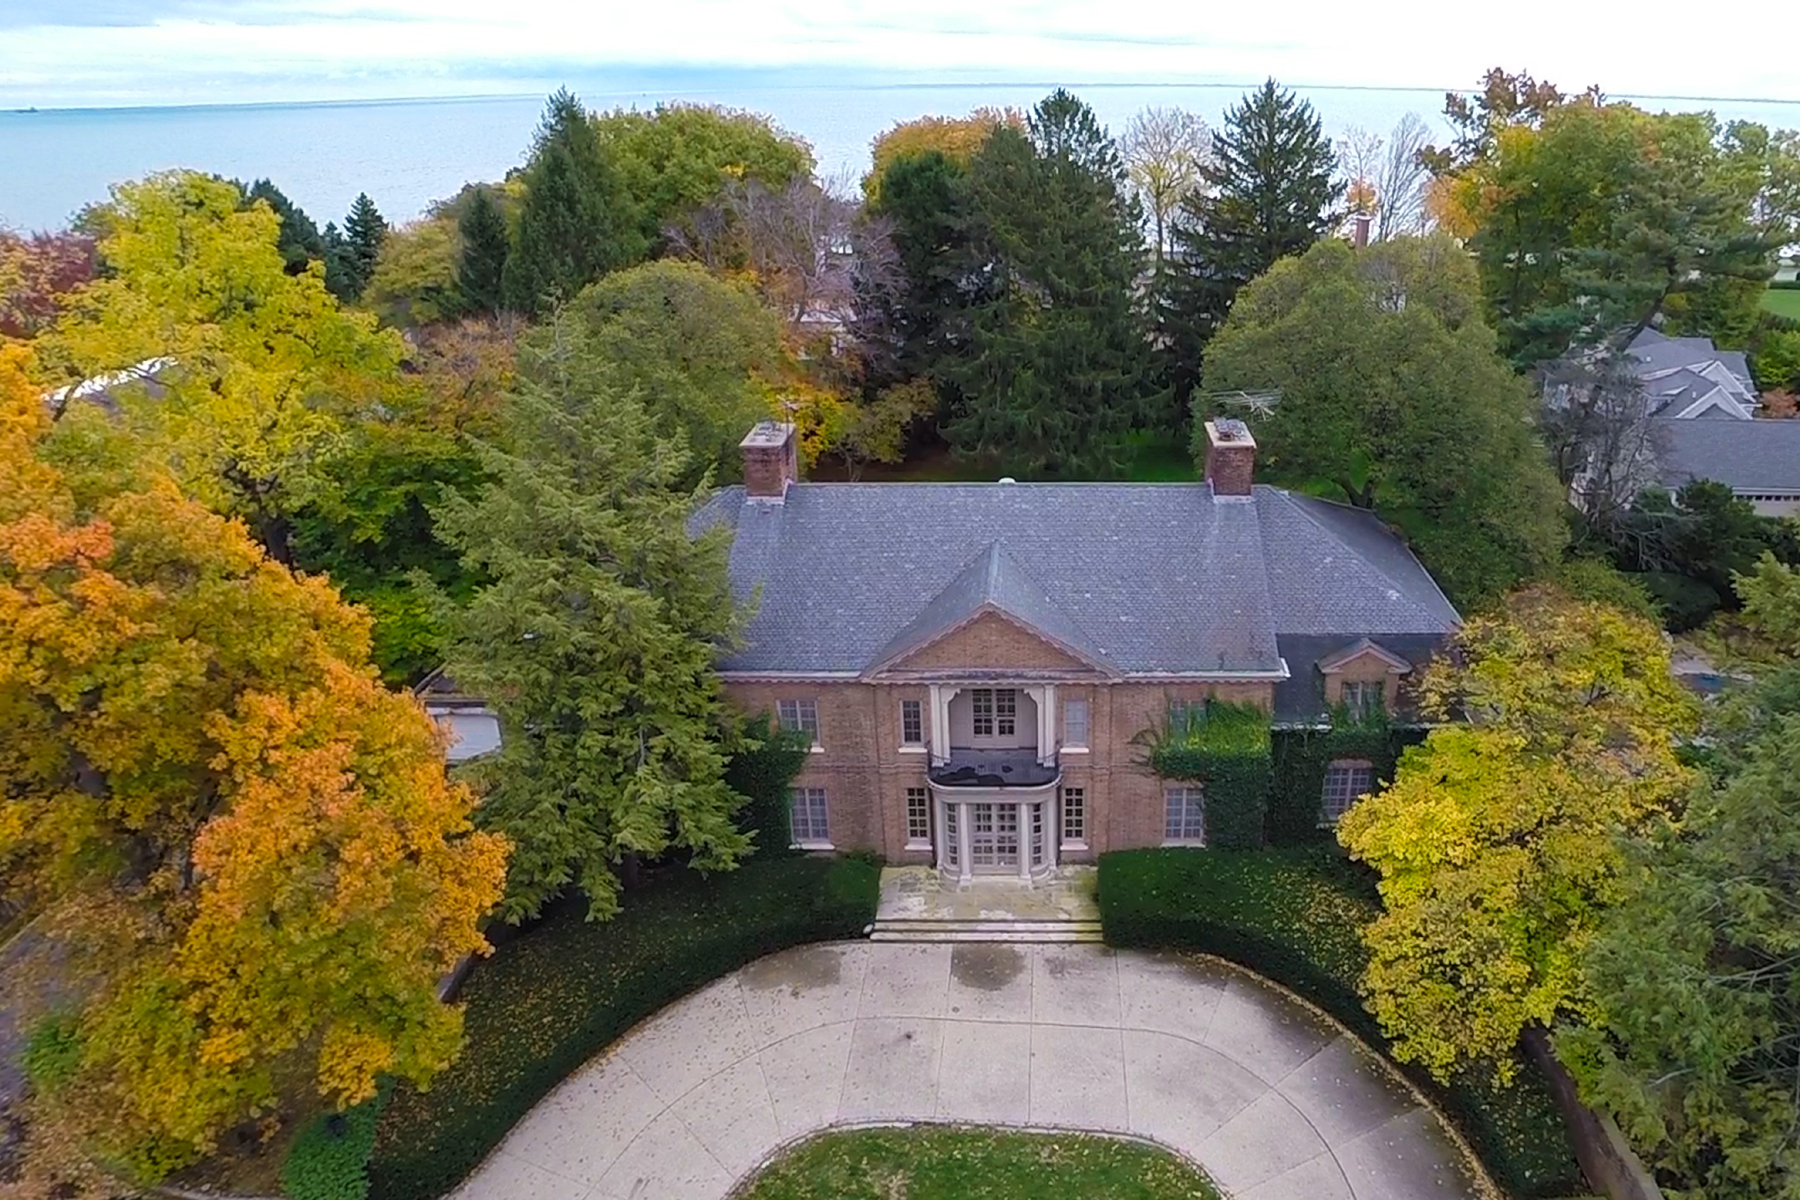 Casa Unifamiliar por un Venta en Grosse Pointe Farms 30 Preston Grosse Pointe Farms, Michigan, 48236 Estados Unidos